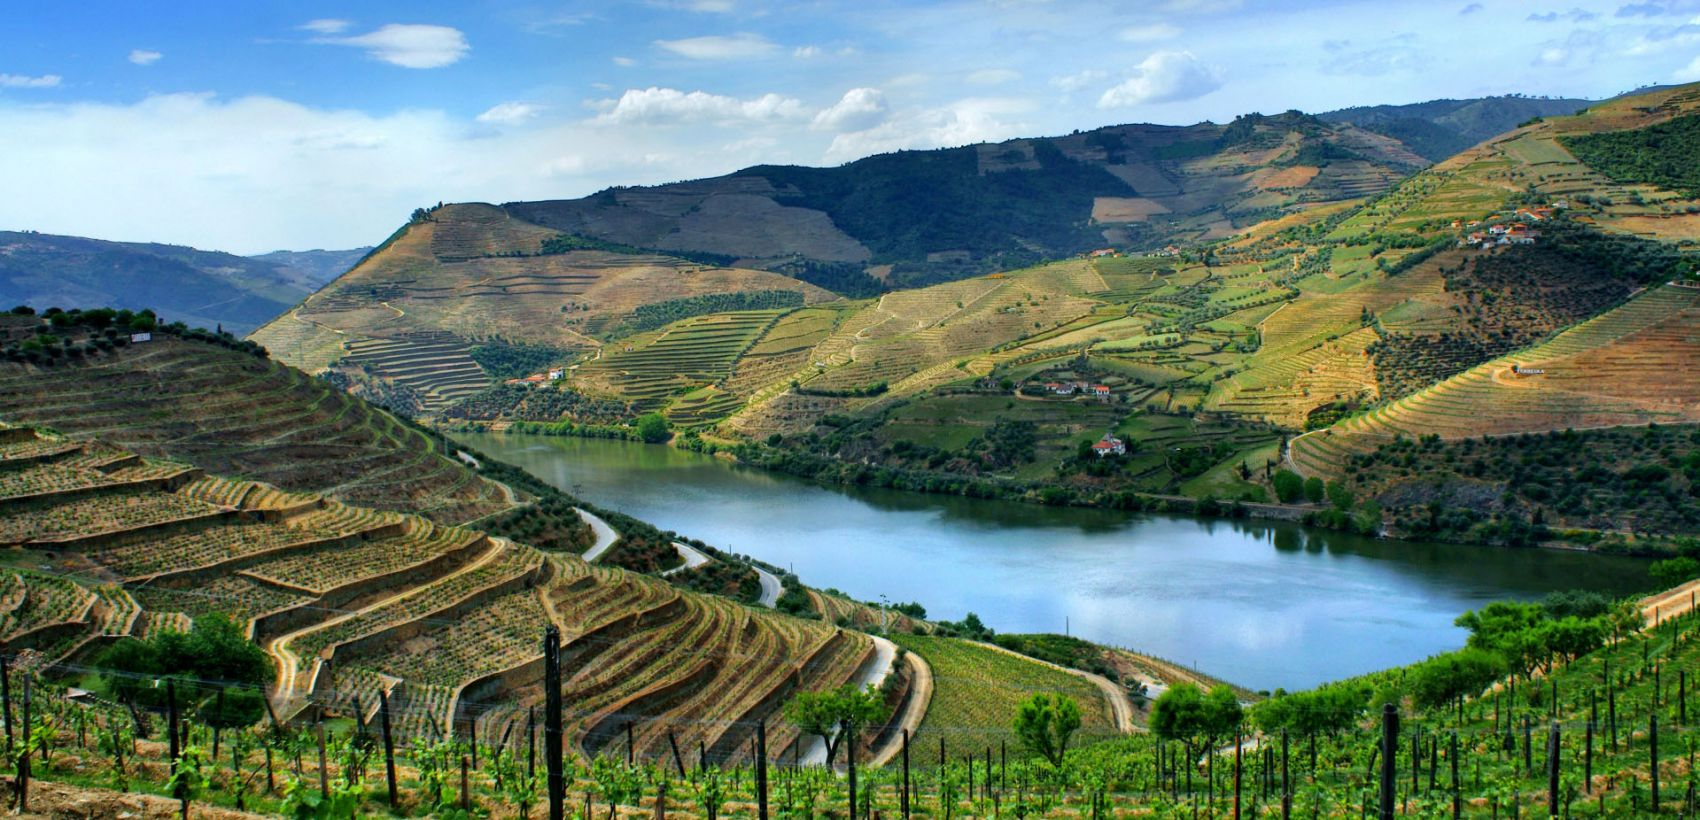 Iate Privado no Douro: Momentos a Bordo